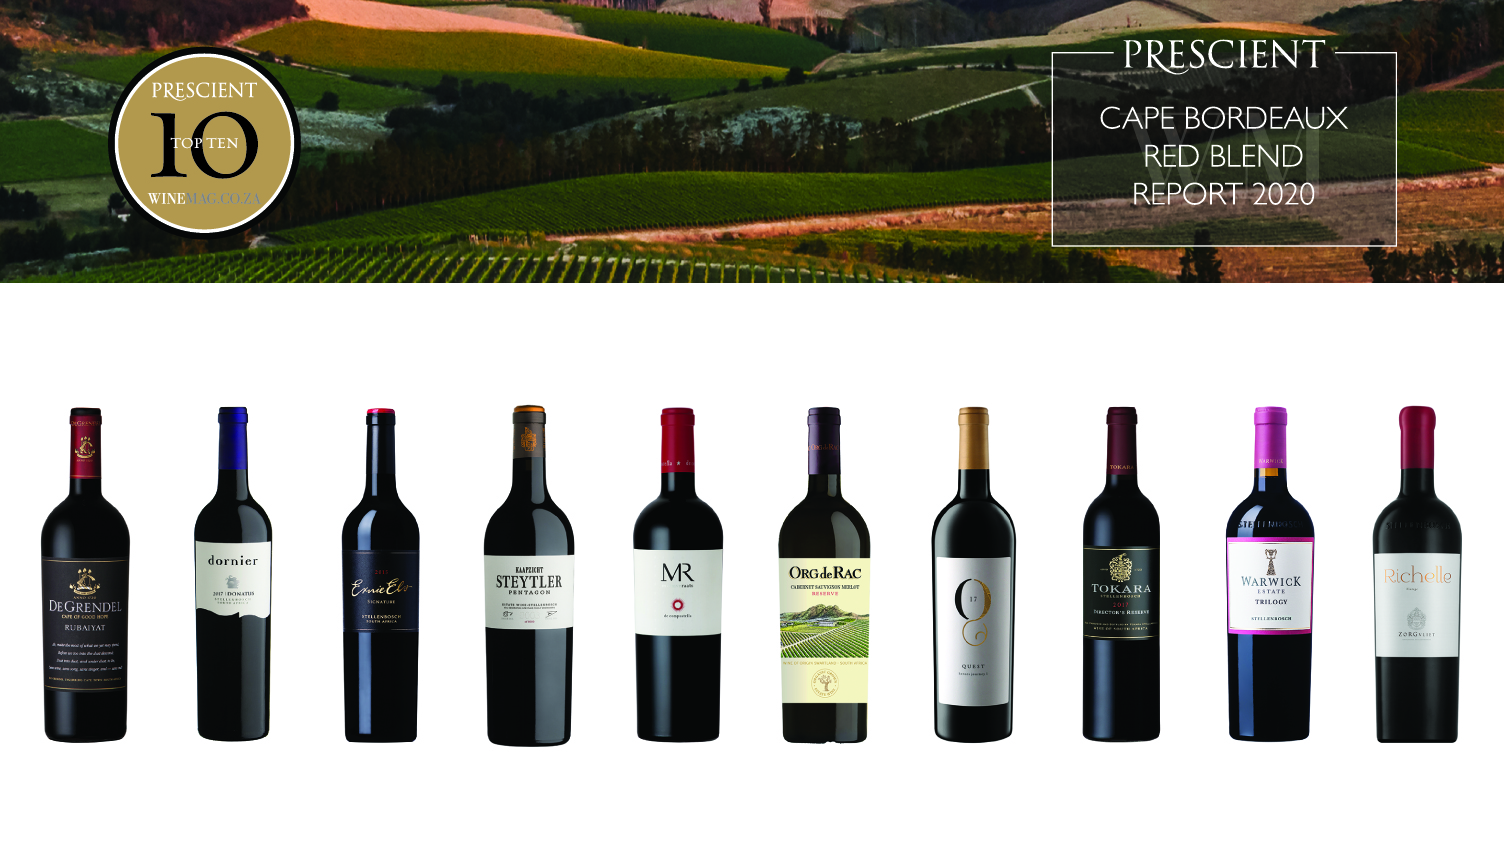 Prescient Cape Bordeaux Red Blend Report 2020 now live – plenty of fruit power in evidence photo